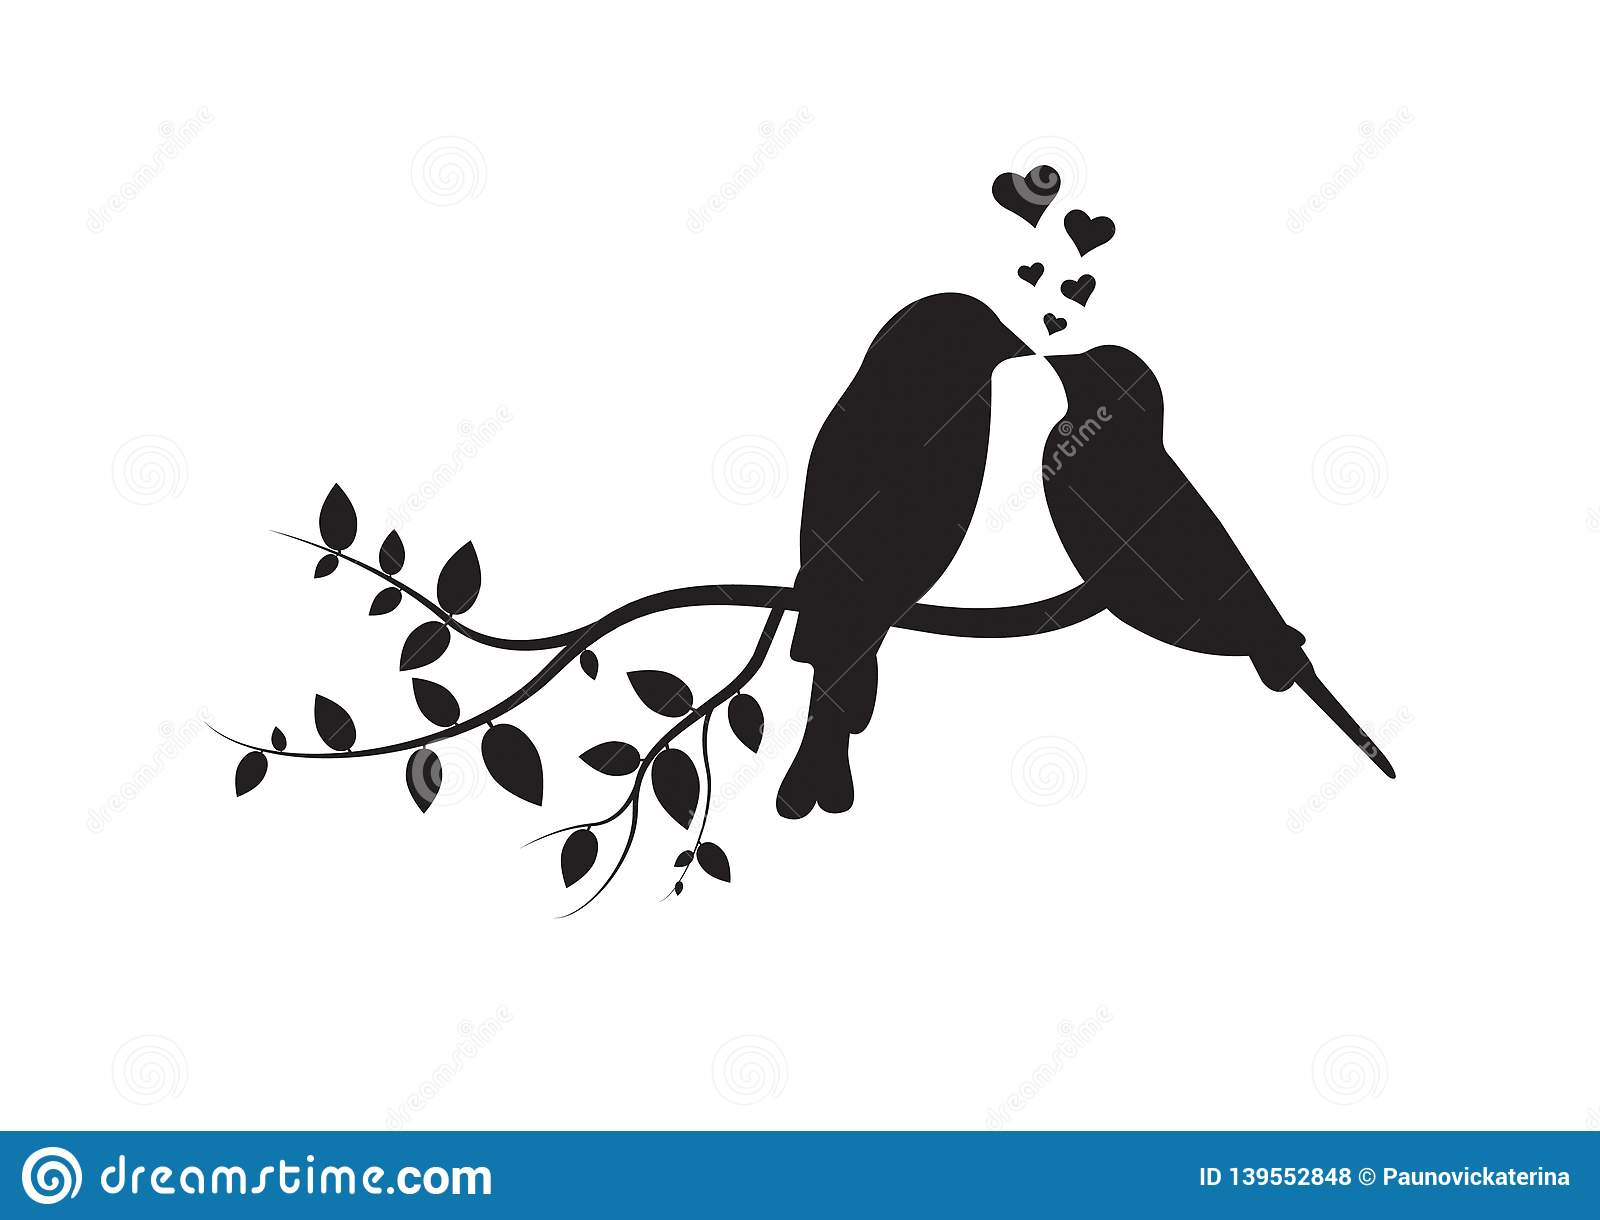 Birds On Branch, Wall Decals, Couple Of Birds In Love, Birds Intended For Most Up To Date Birds On A Branch Wall Decor (Gallery 16 of 20)